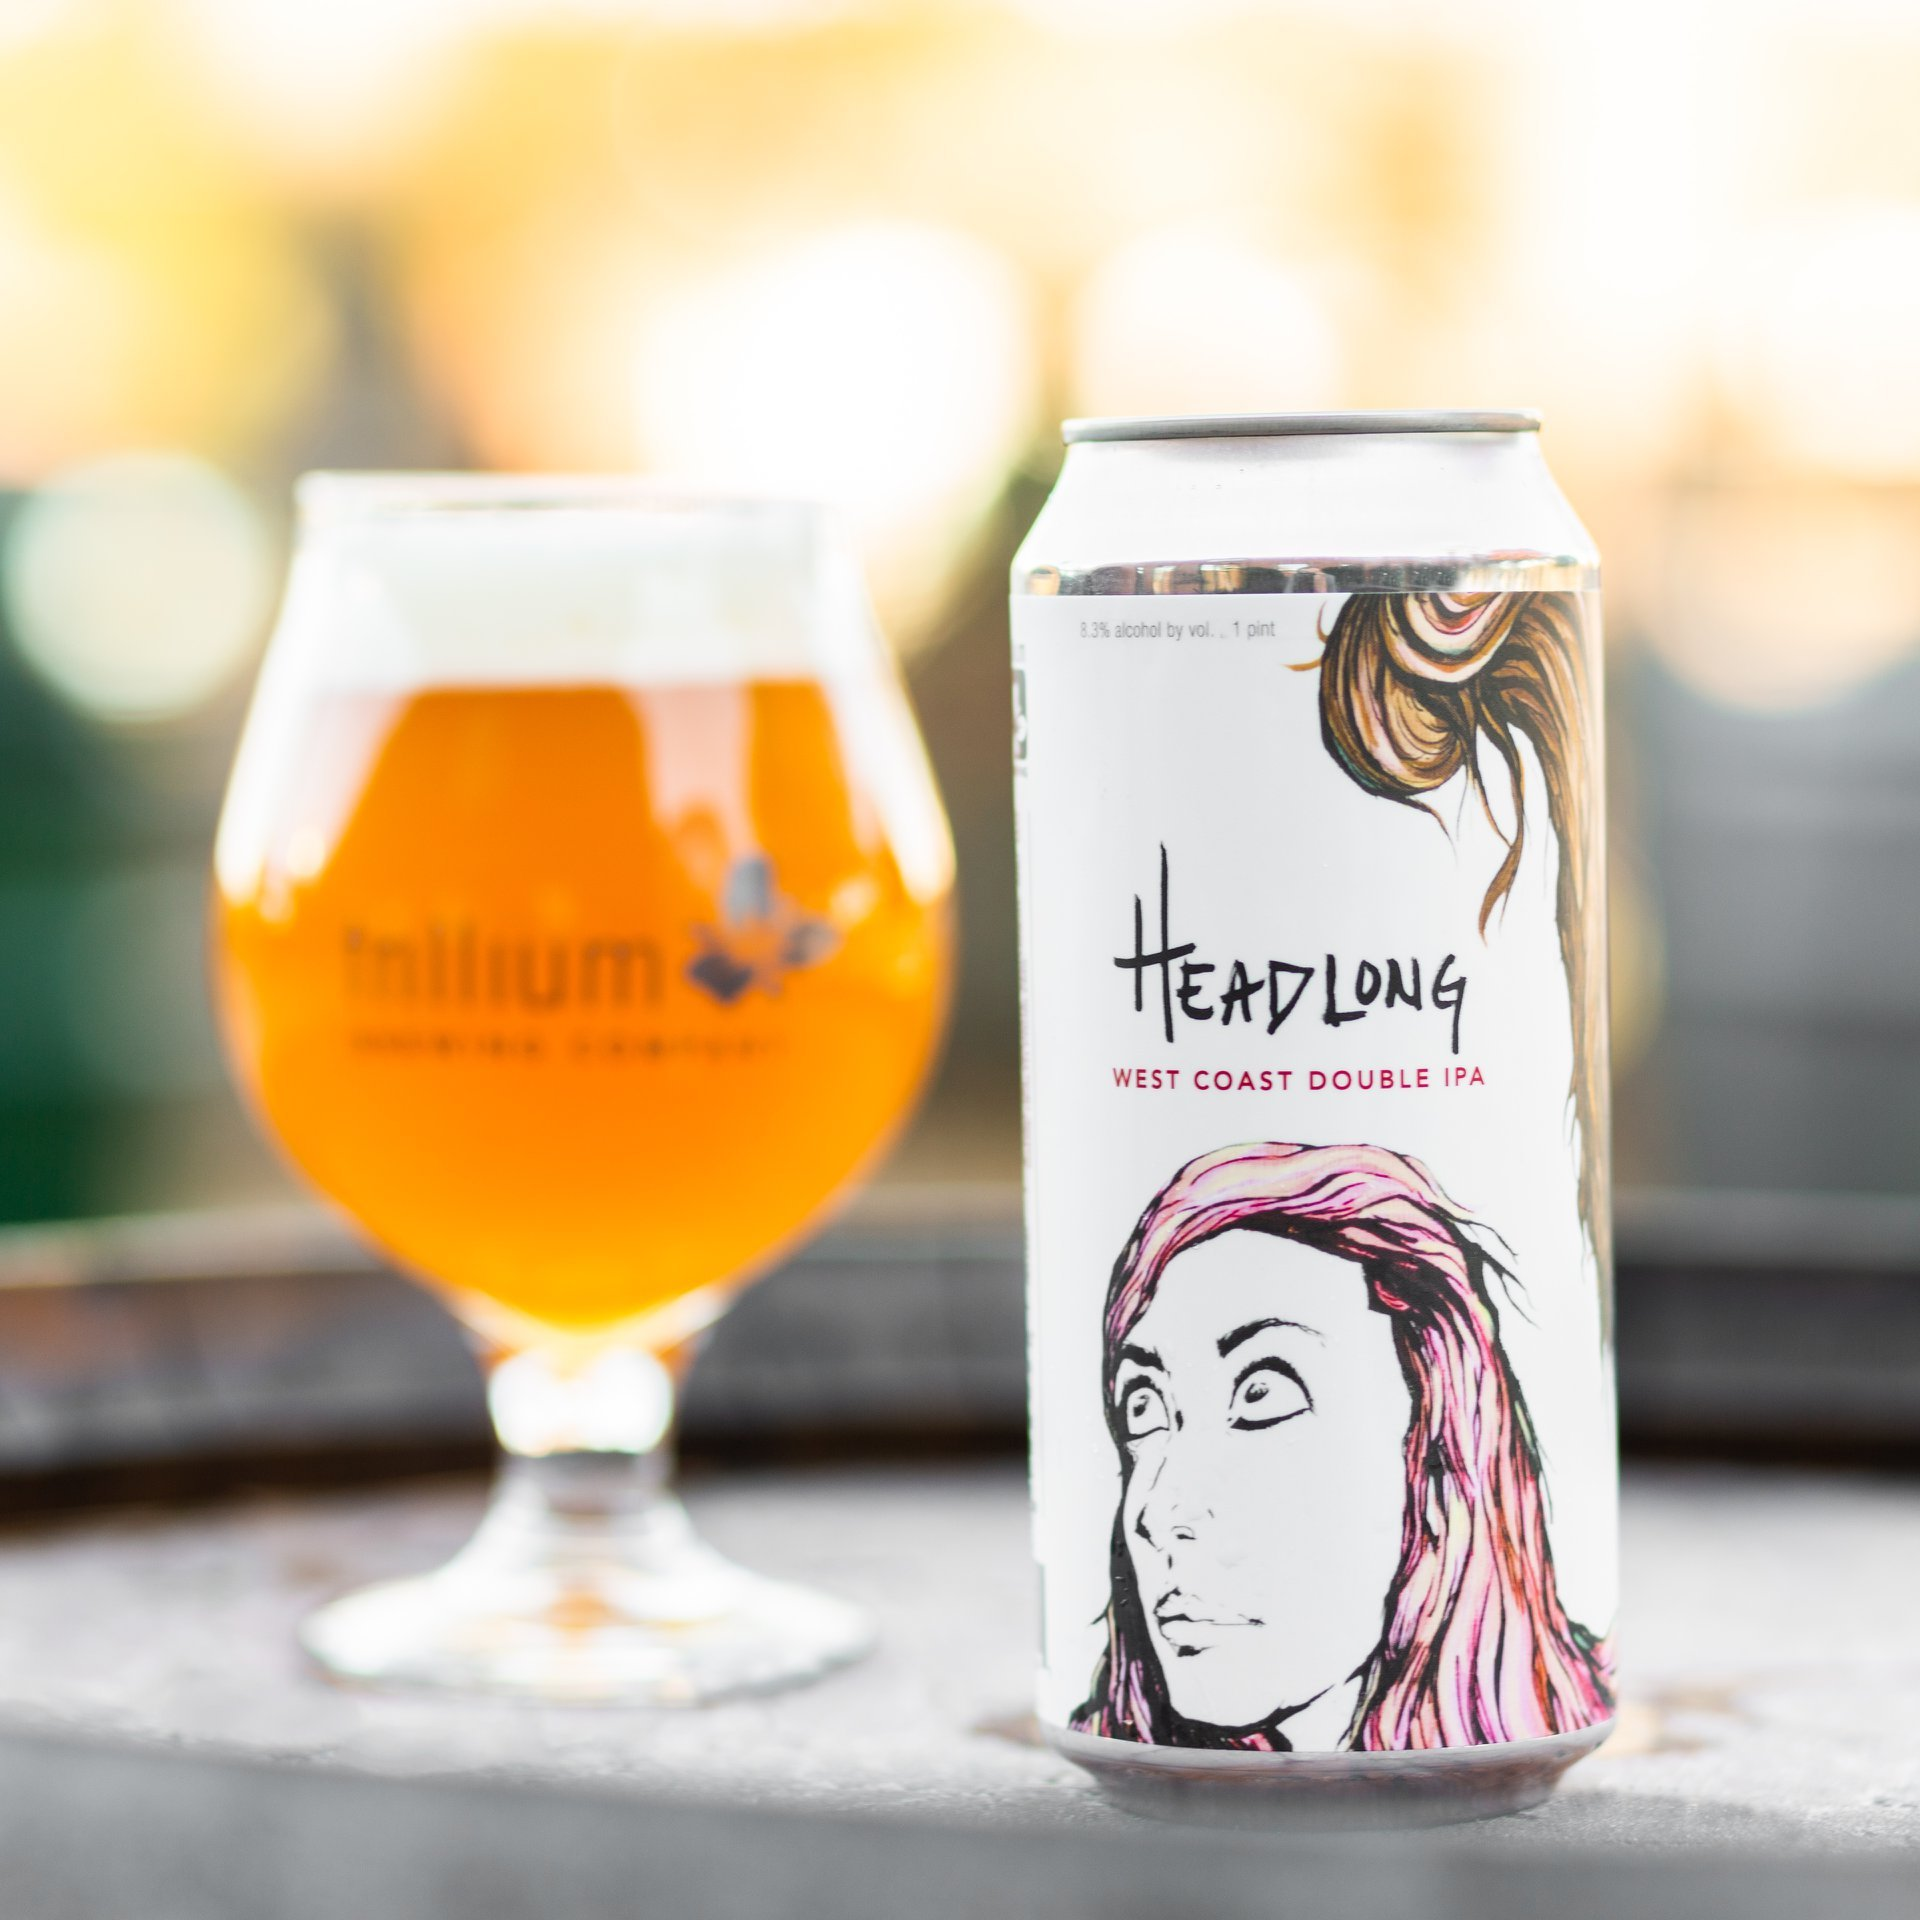 Trillium Headlong Label Art by Heidi Geist